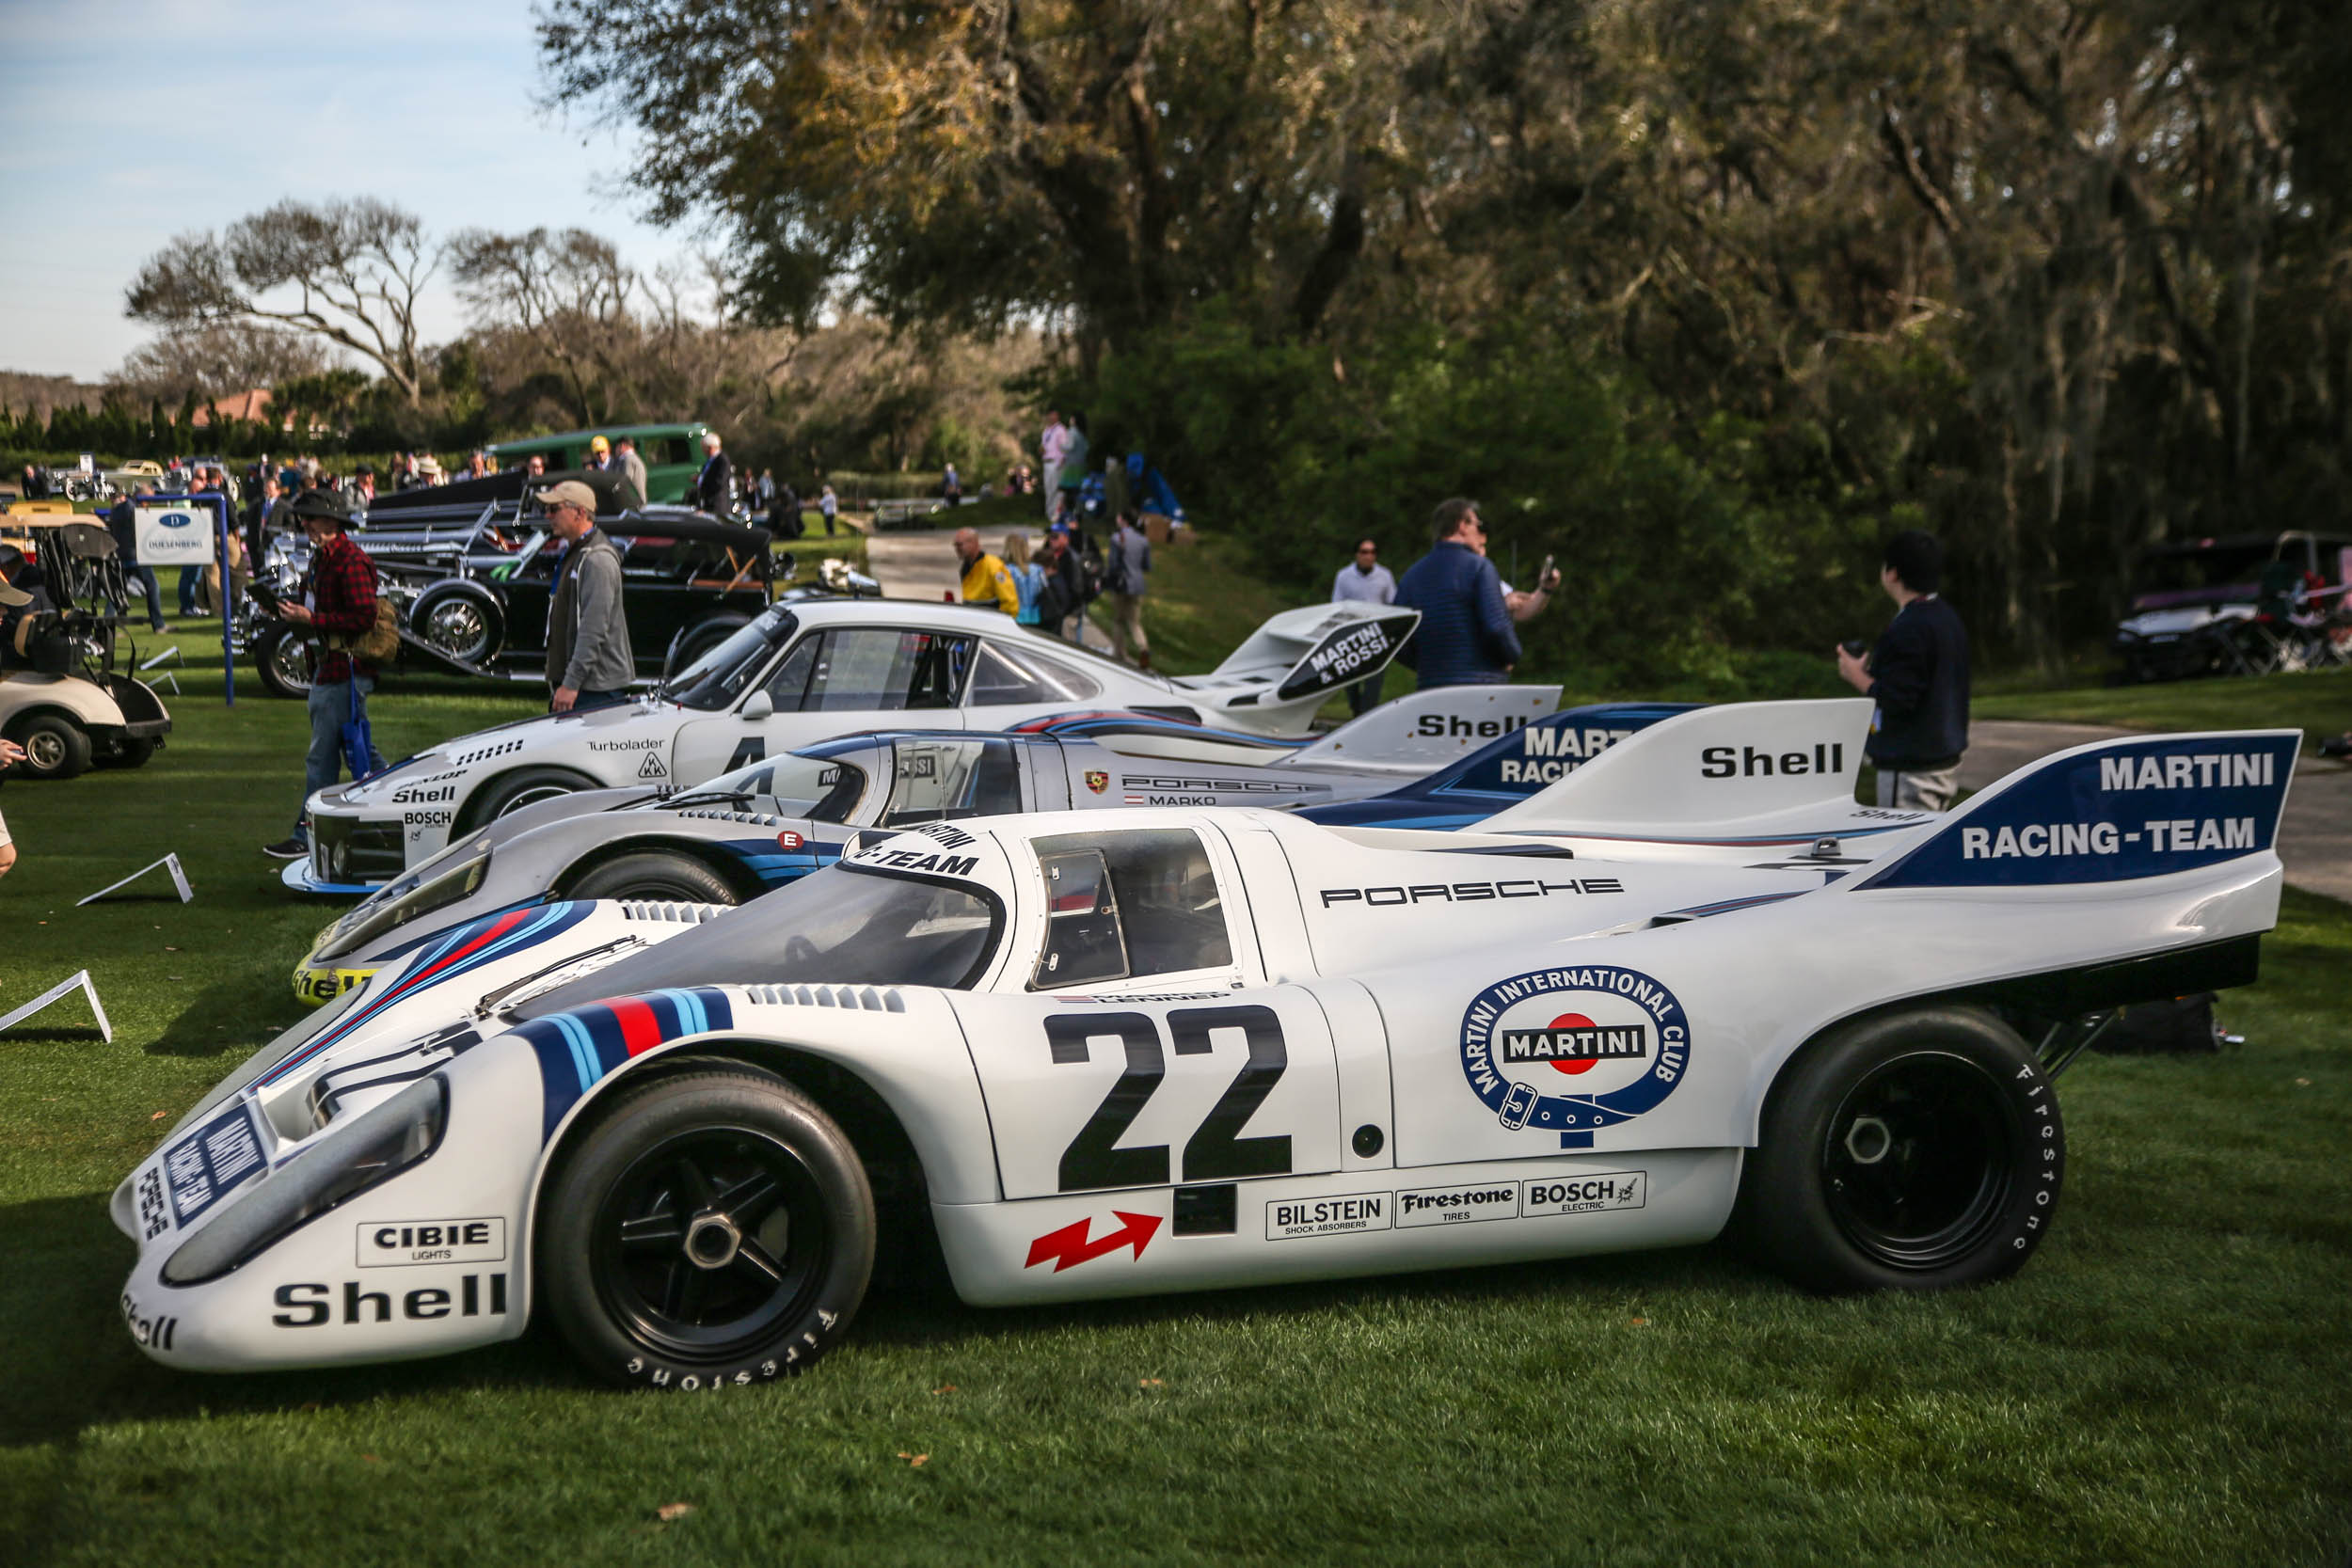 OK, so Martini makes a good case. Here's a nice lineup of Porsches wearing the iconic livery.